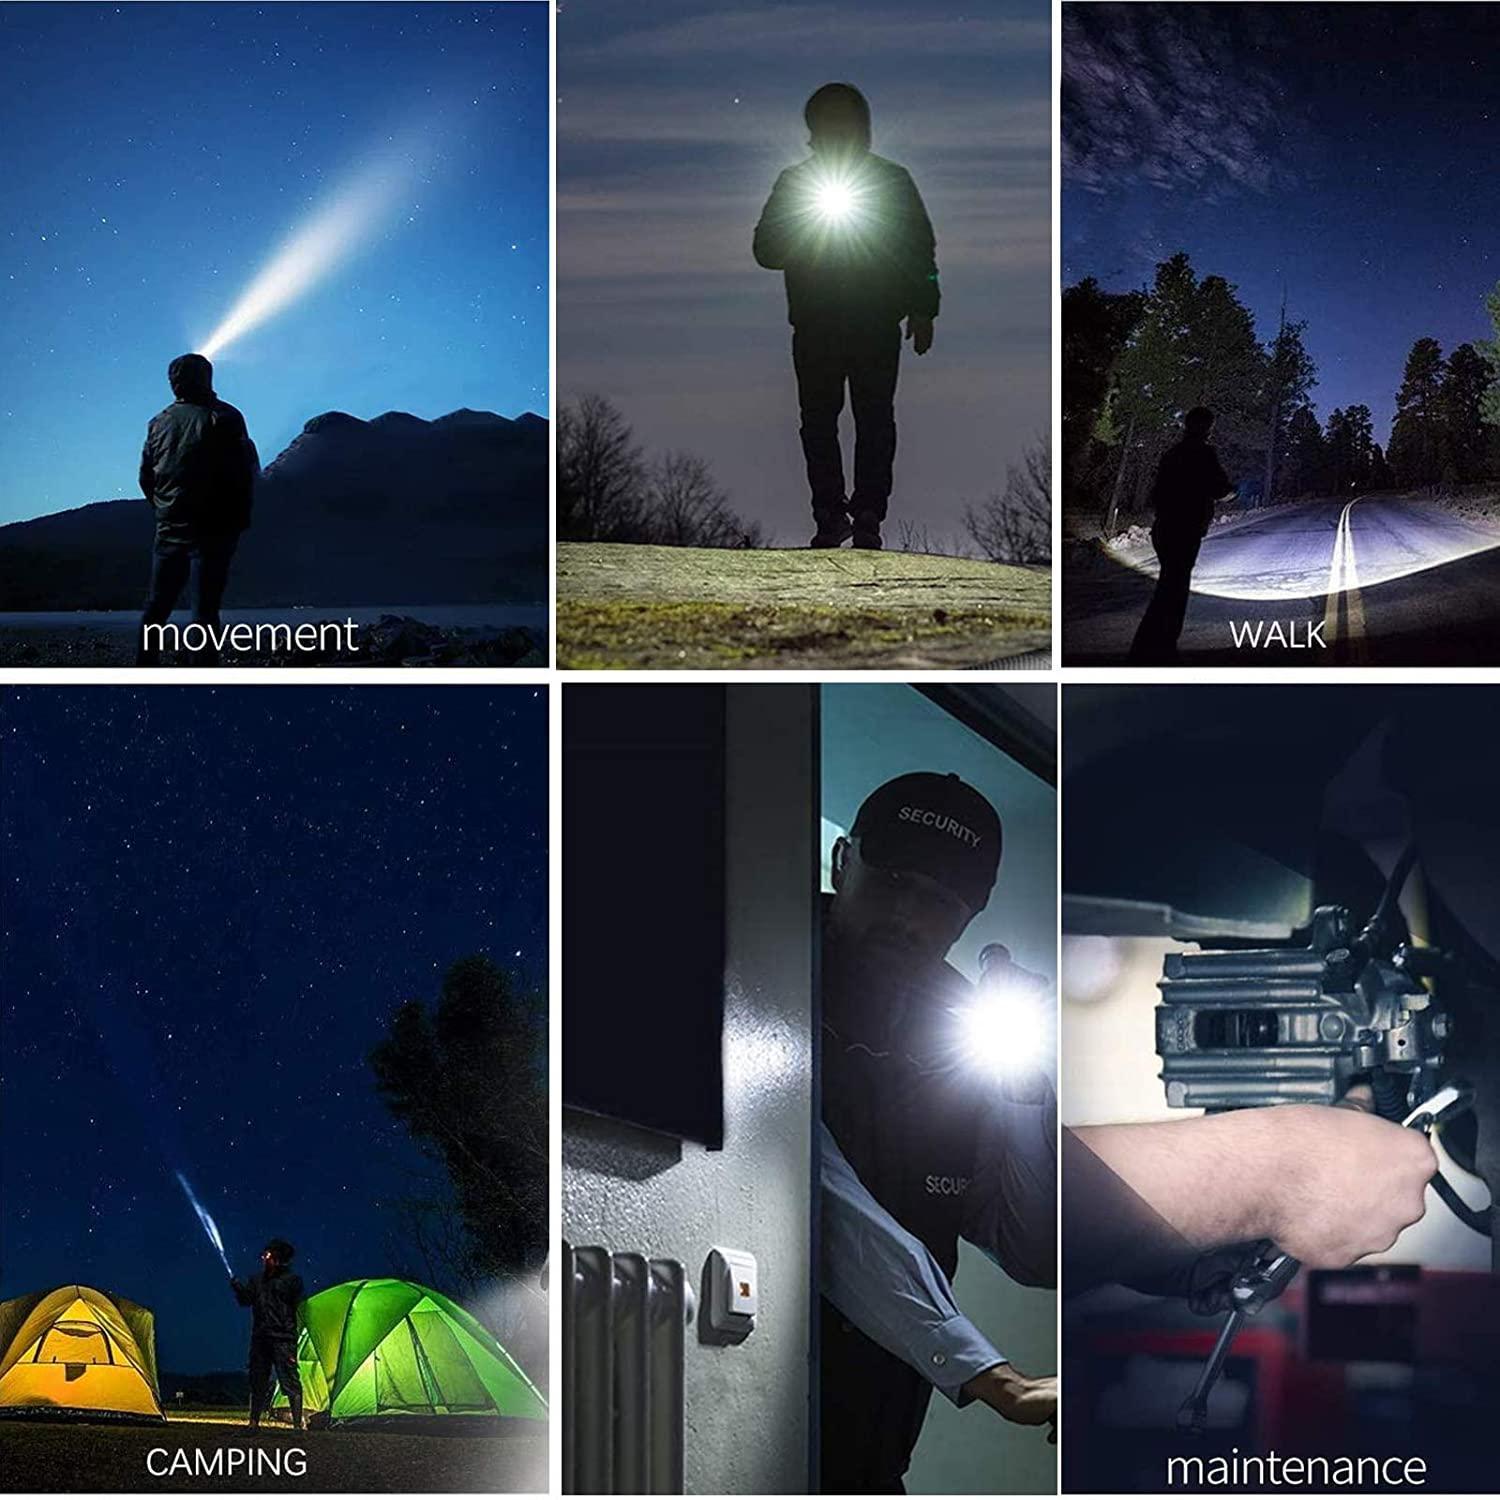 Tactical Flashlights and LED Headlamp Batteries Not Included Water Resistant Pocket Size for Indoor Outdoor Camping Emergency Dog Walking Super Bright 1200Lumen+500Lumen Flashlight Headlamp Combo